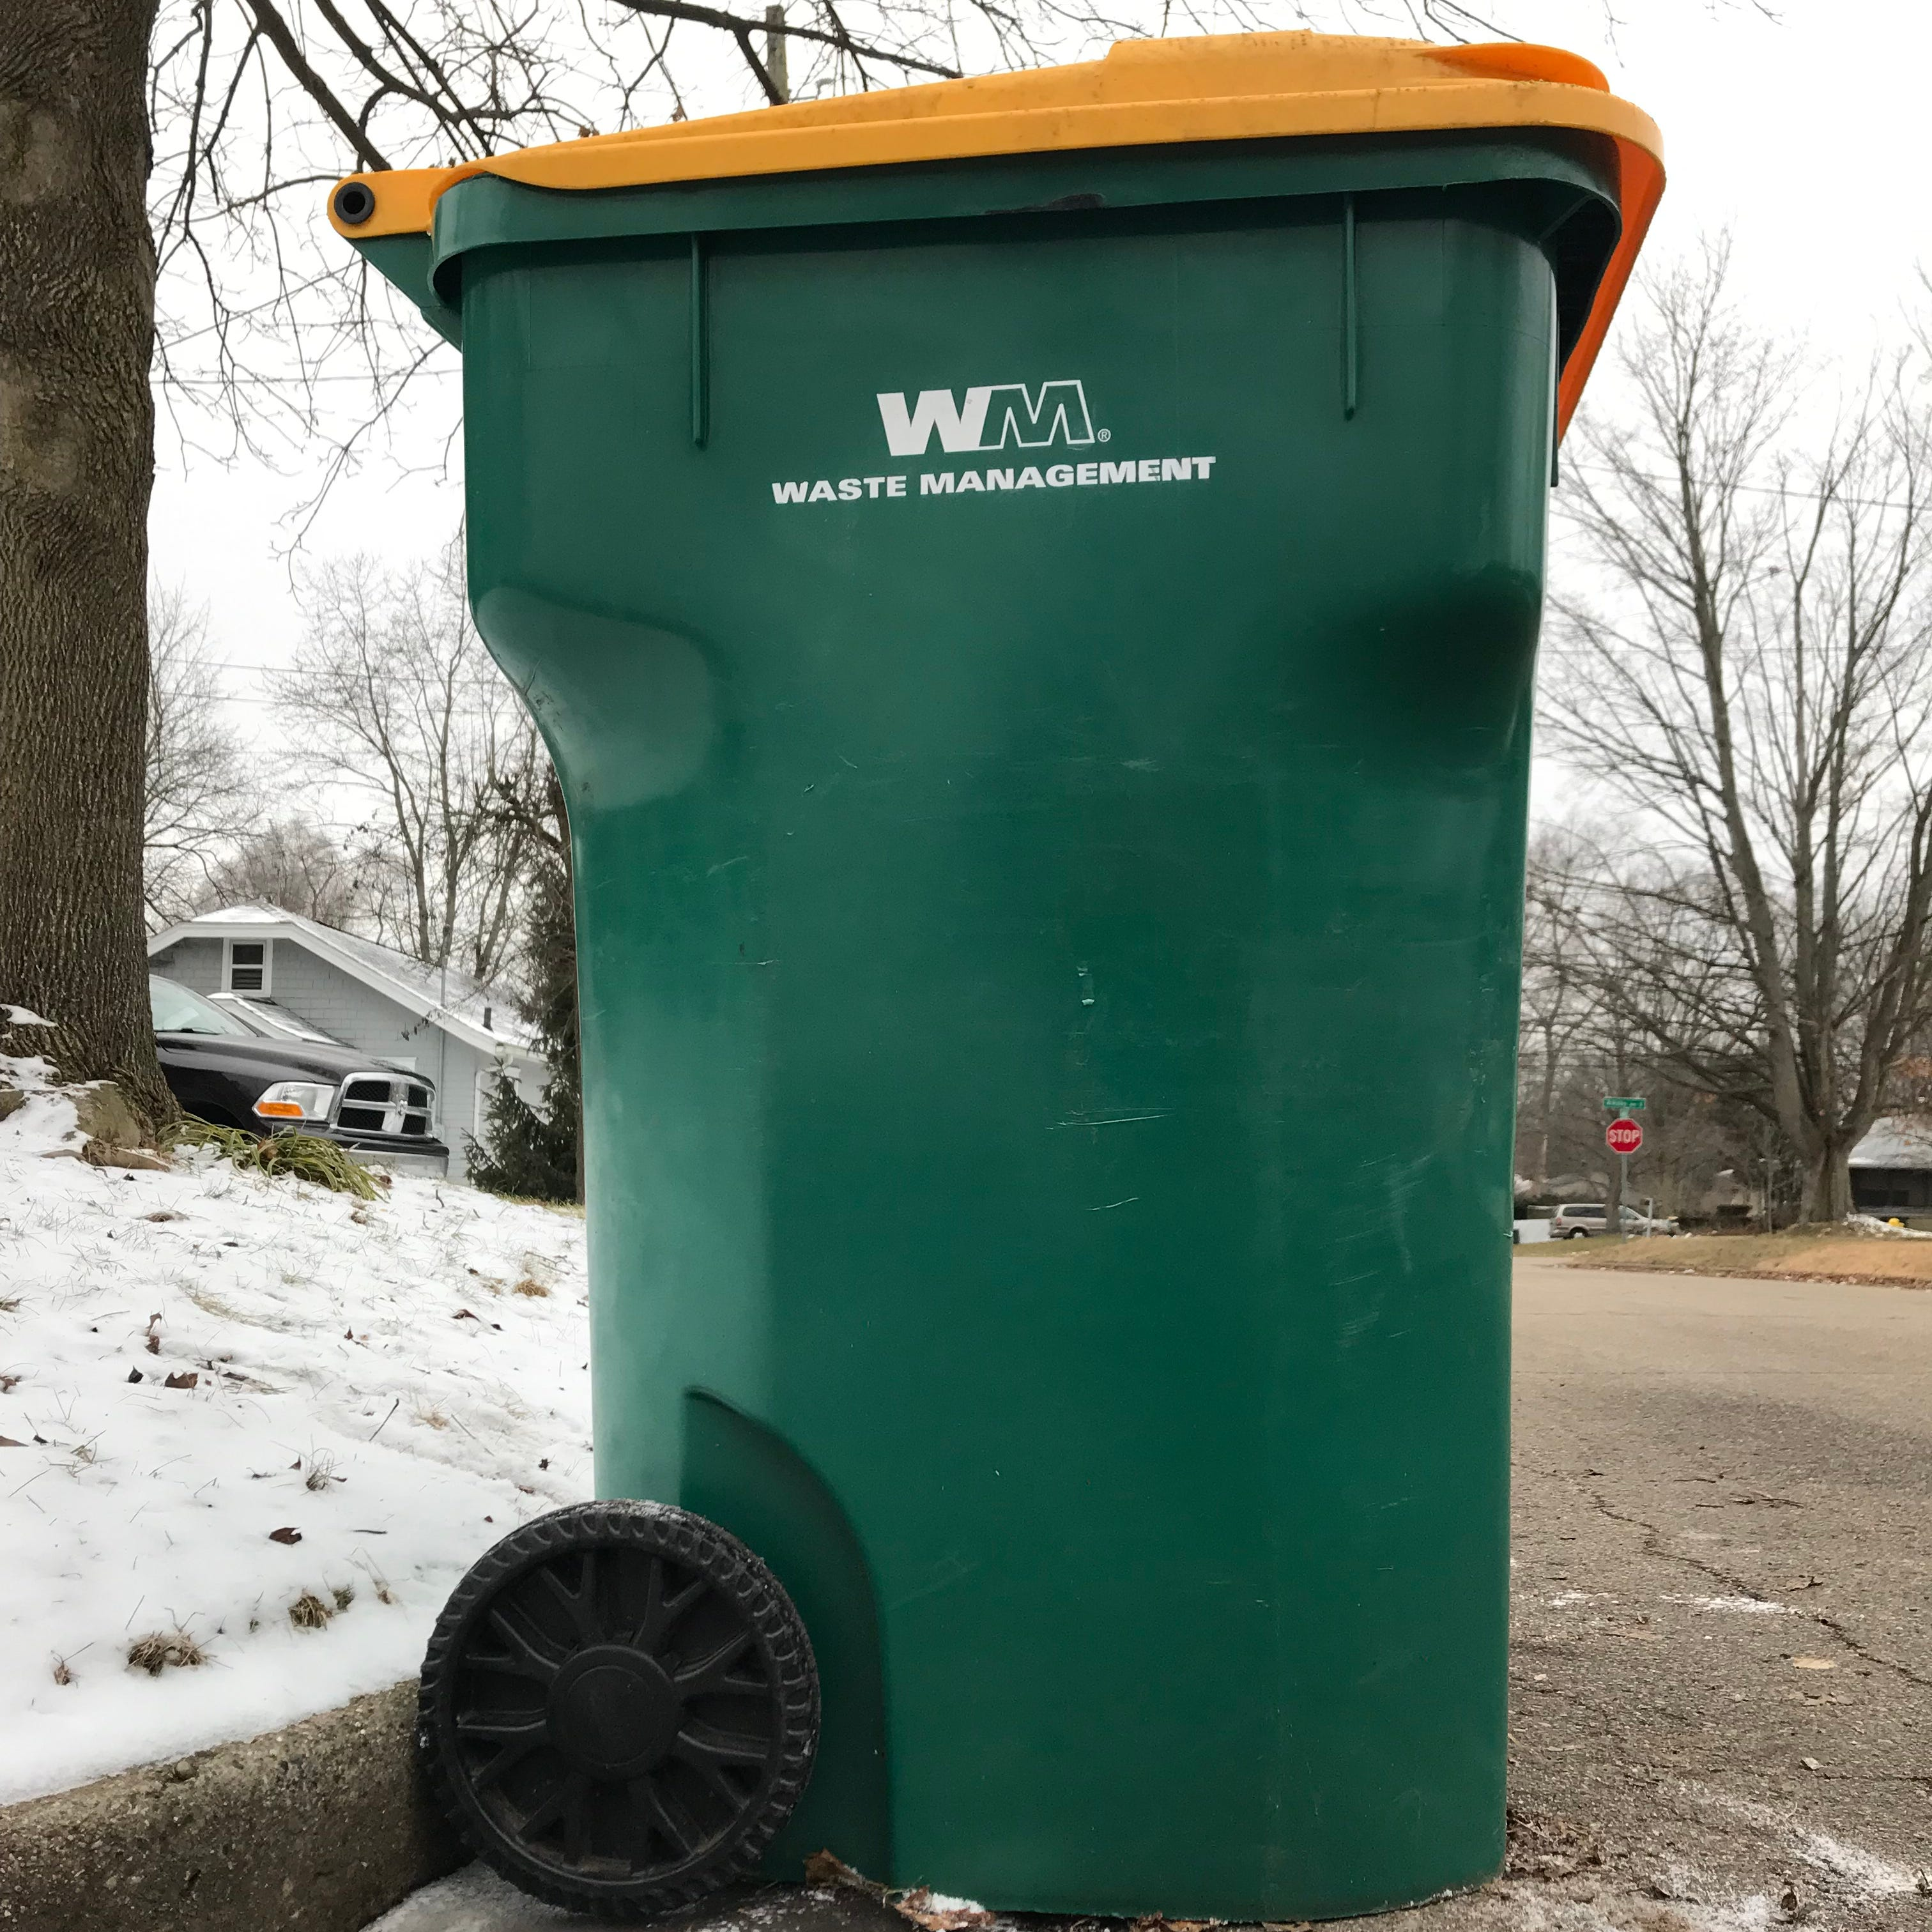 Recycling in Battle Creek will be picked up once every 2 weeks starting in April